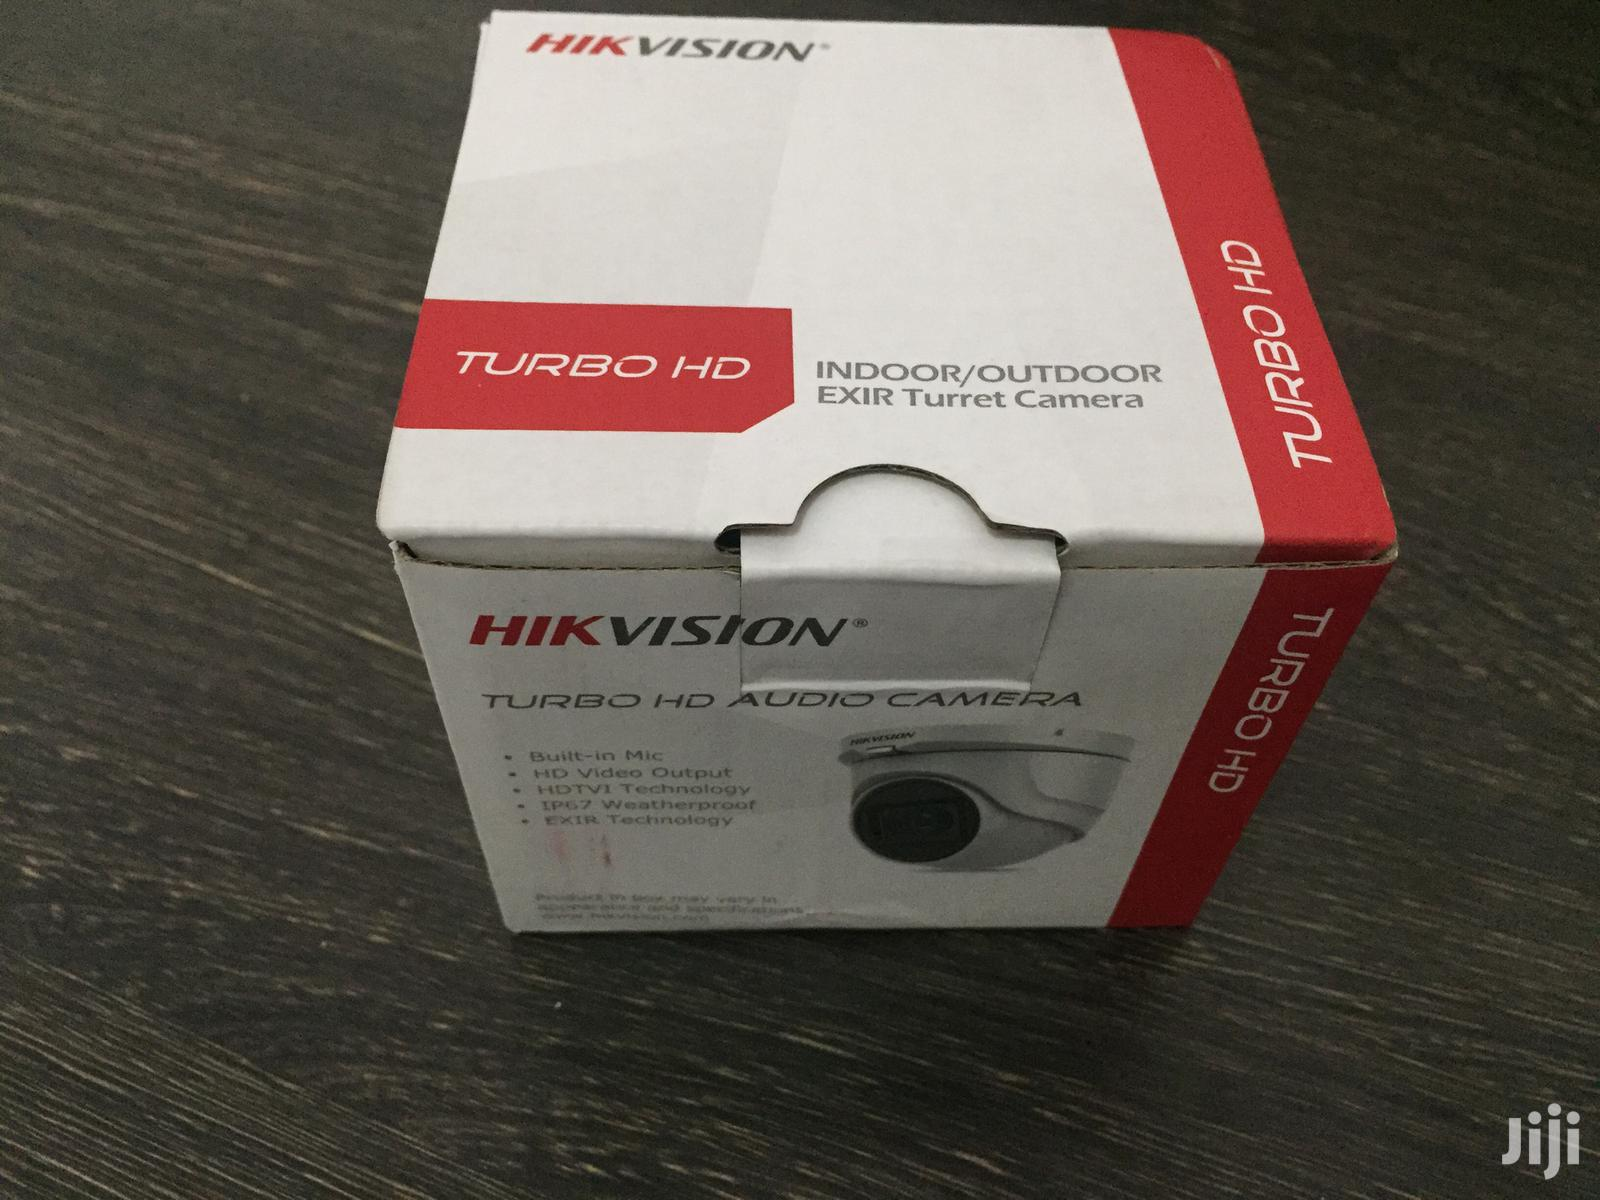 Audio CCTV Hikvision | Security & Surveillance for sale in Dzorwulu, Greater Accra, Ghana